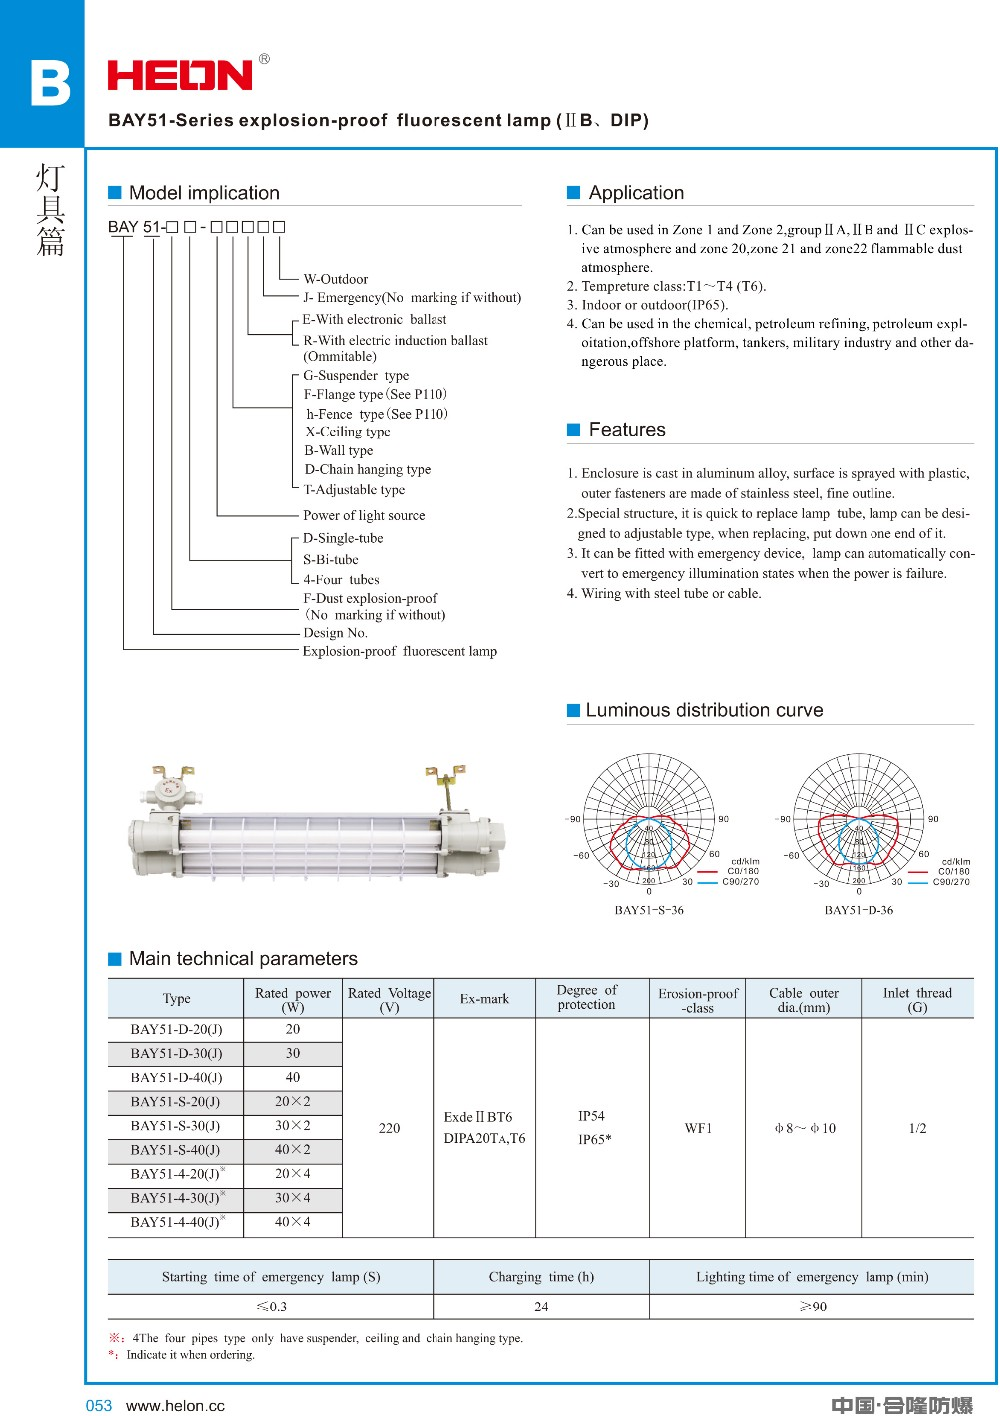 BAY51-Series explosion-proof fluorescent lamp(T5 tube)